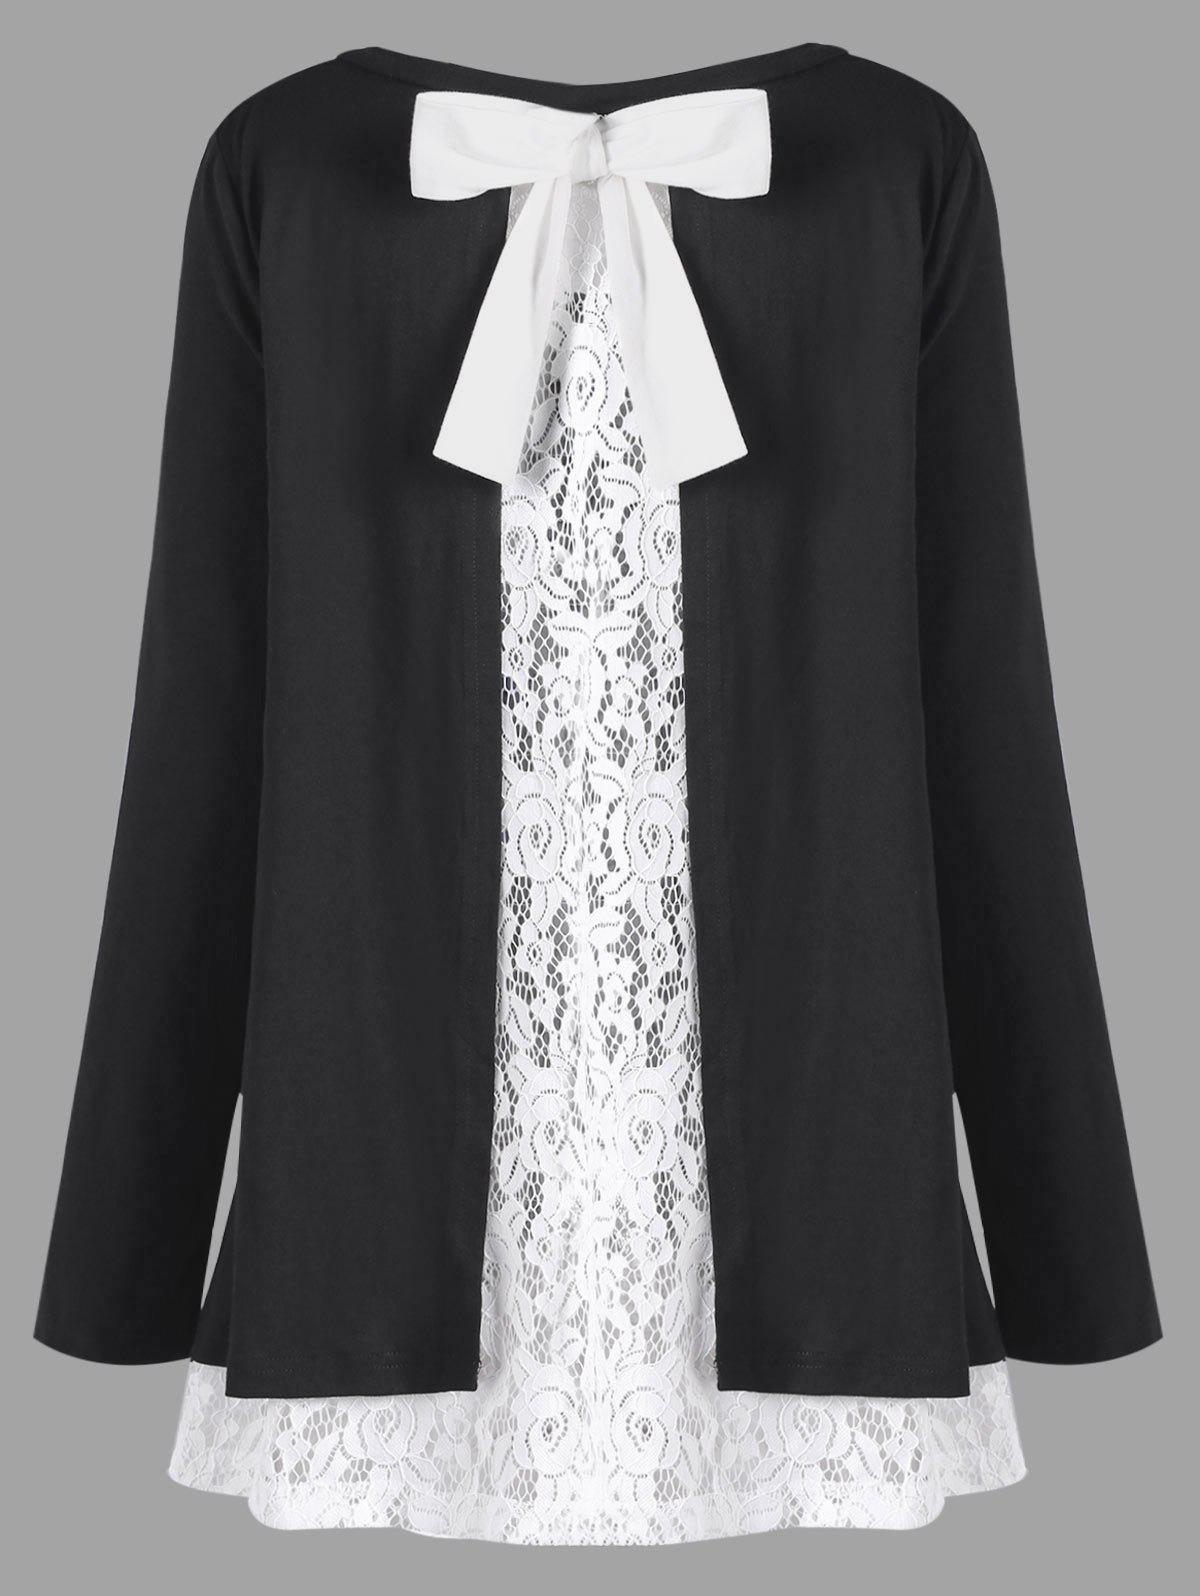 Plus Size Bowknot Embellished Lace Trim TopWOMEN<br><br>Size: 4XL; Color: WHITE AND BLACK; Material: Polyester,Spandex; Shirt Length: Long; Sleeve Length: Full; Collar: Scoop Neck; Style: Casual; Season: Fall,Spring; Embellishment: Lace; Pattern Type: Floral; Weight: 0.3900kg; Package Contents: 1 x Top;